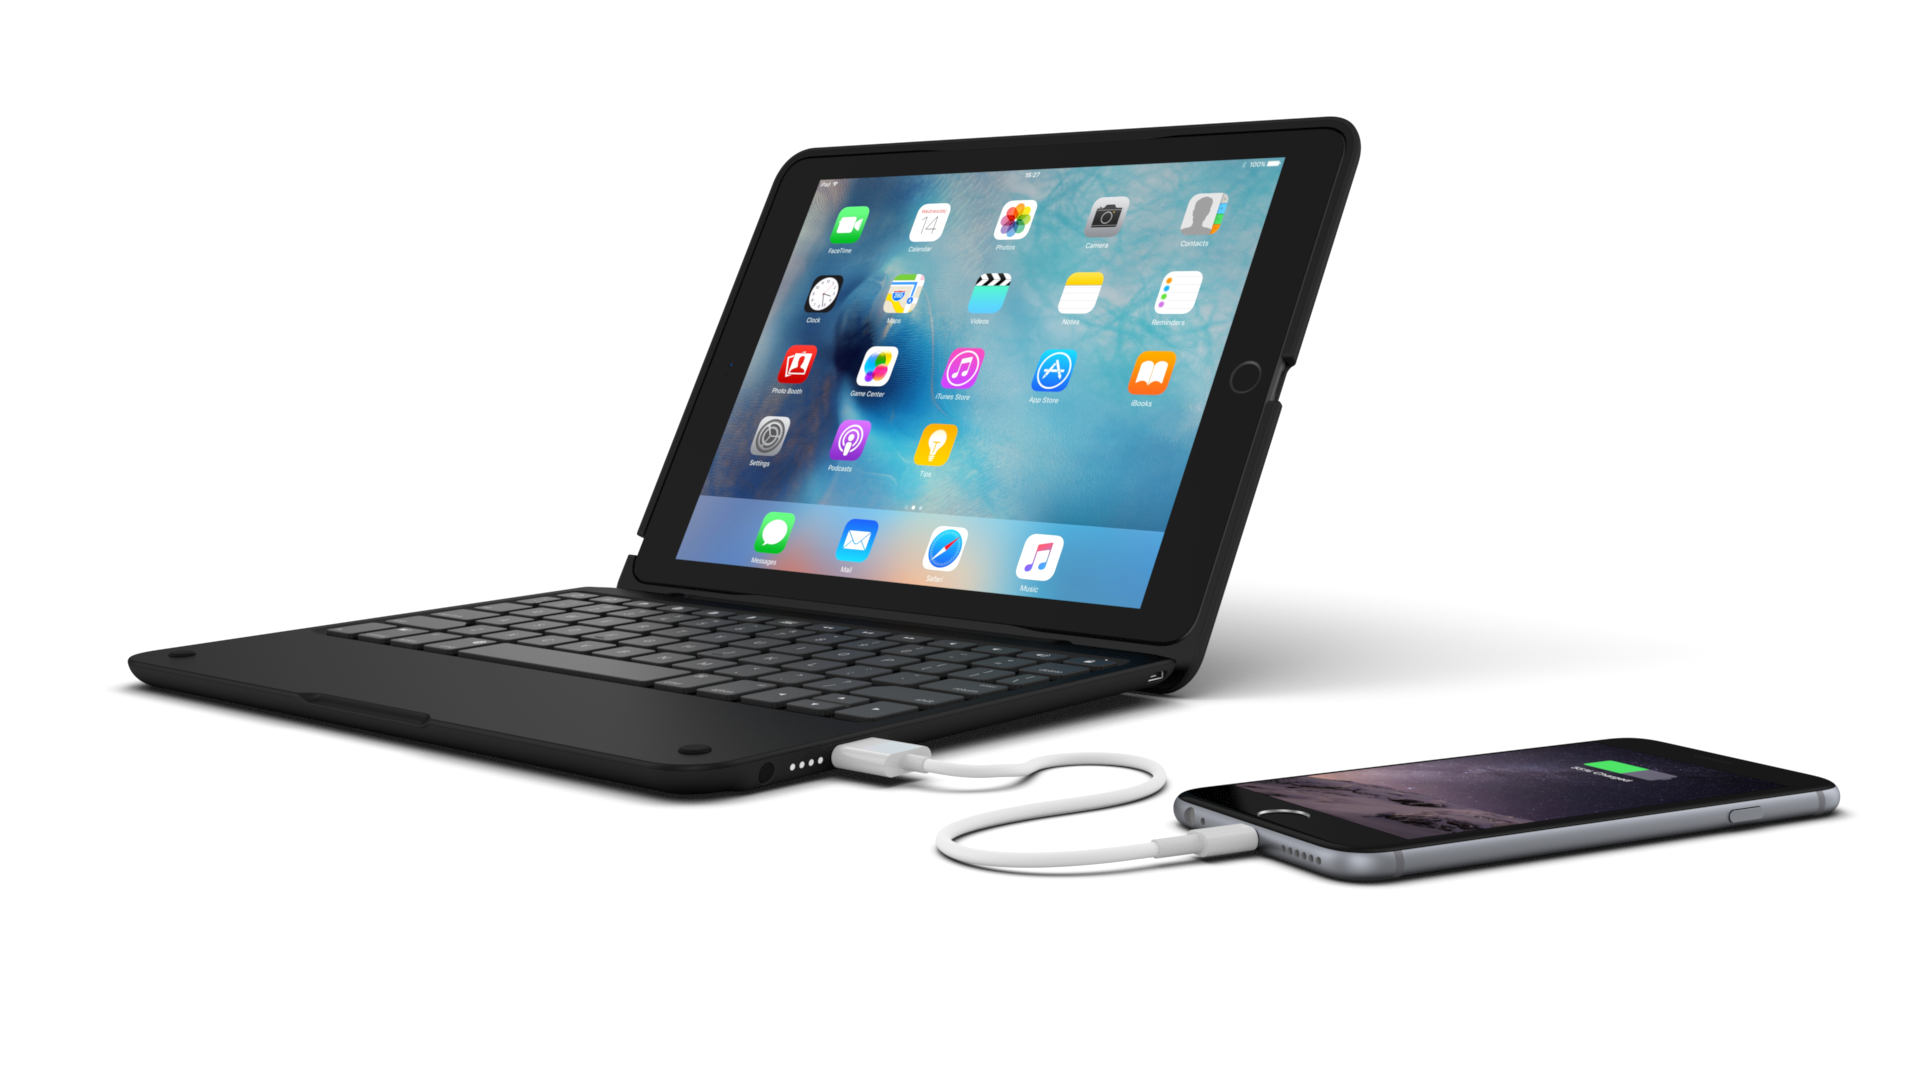 incipio unveils new clamcase keyboard cases for ipad pro. Black Bedroom Furniture Sets. Home Design Ideas